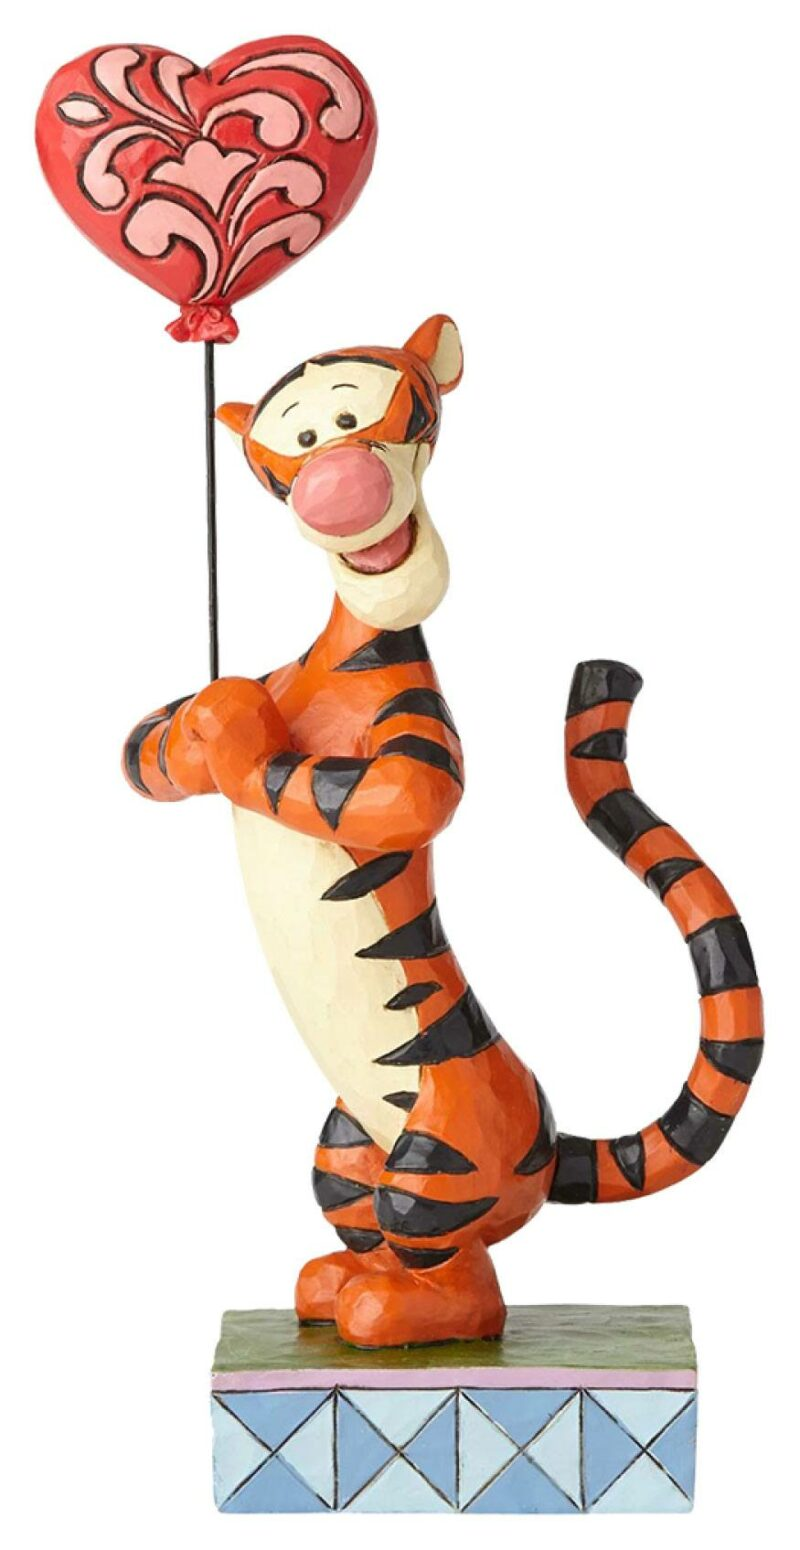 Disney Traditions Statue Tigger with Heart Balloon (Winnie the Pooh) 19 cm